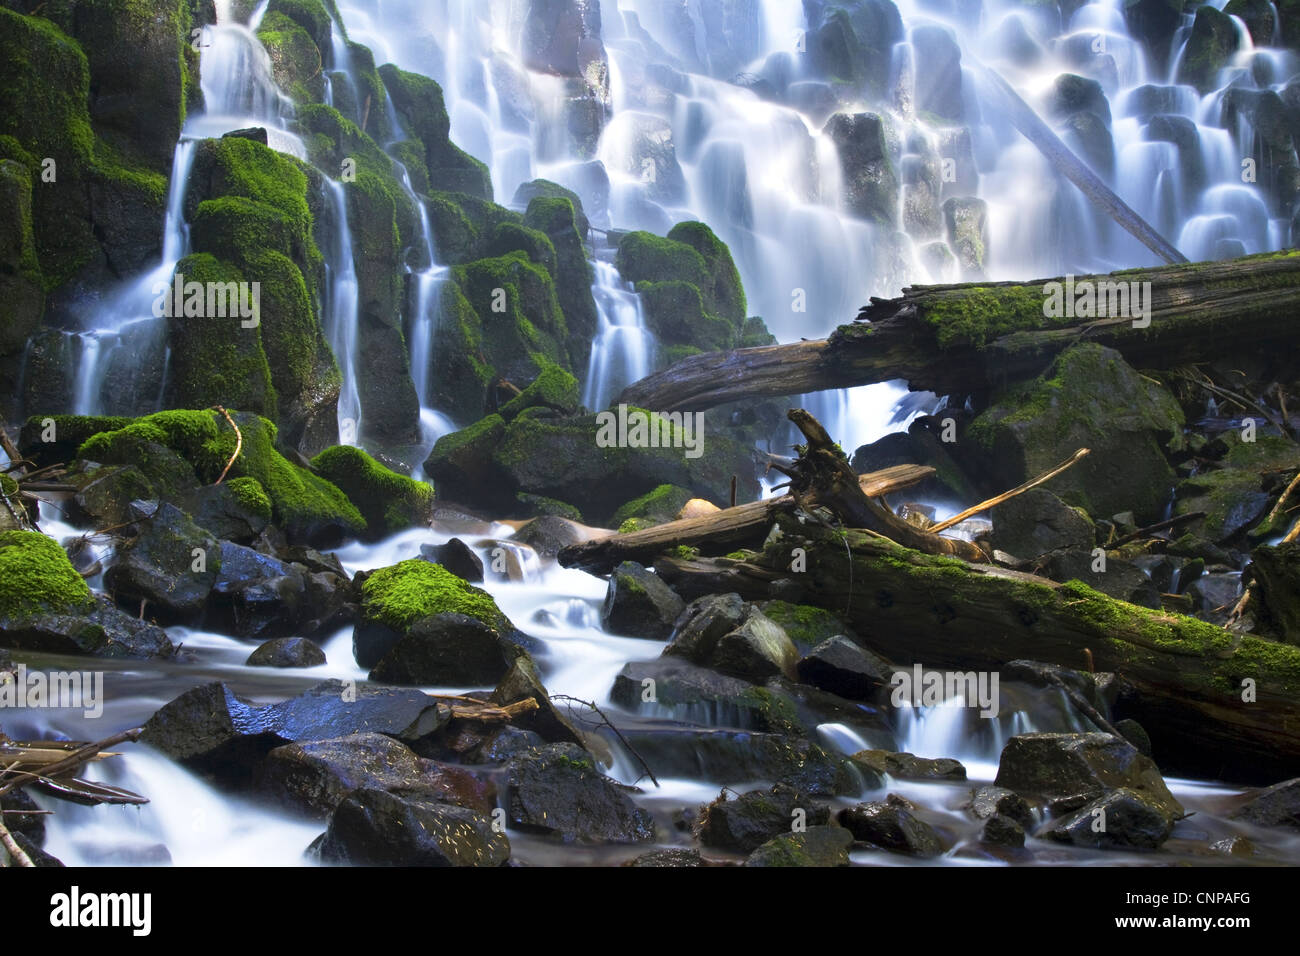 Ramona Falls located in Oregon's Mt Hood National Forest - Stock Image